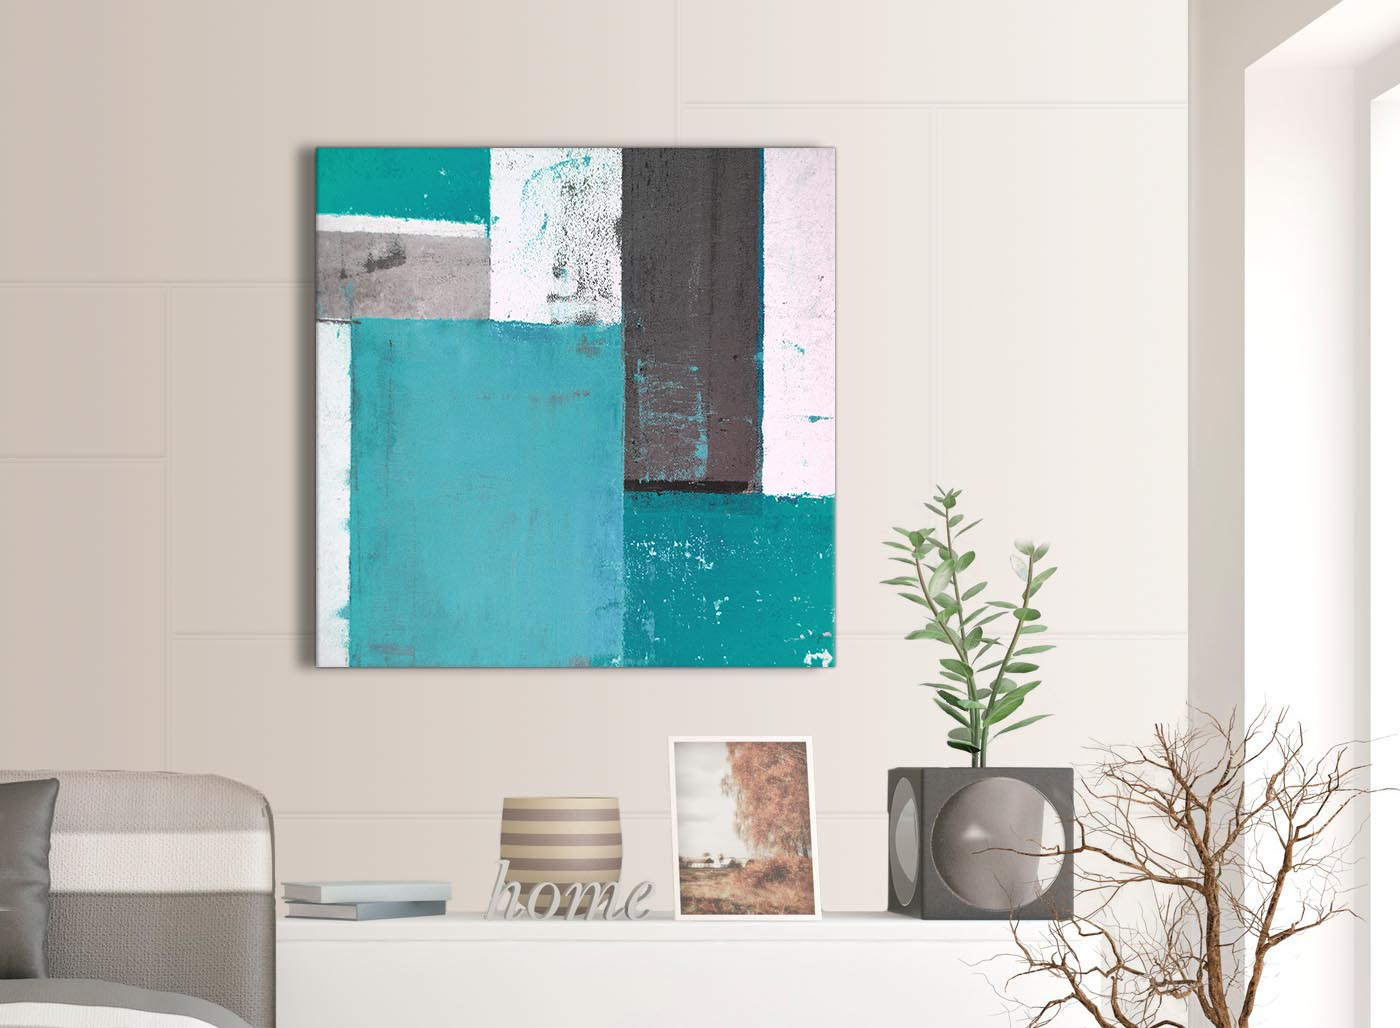 teal grey abstract painting canvas wall art modern 79cm square 1s344l. Black Bedroom Furniture Sets. Home Design Ideas